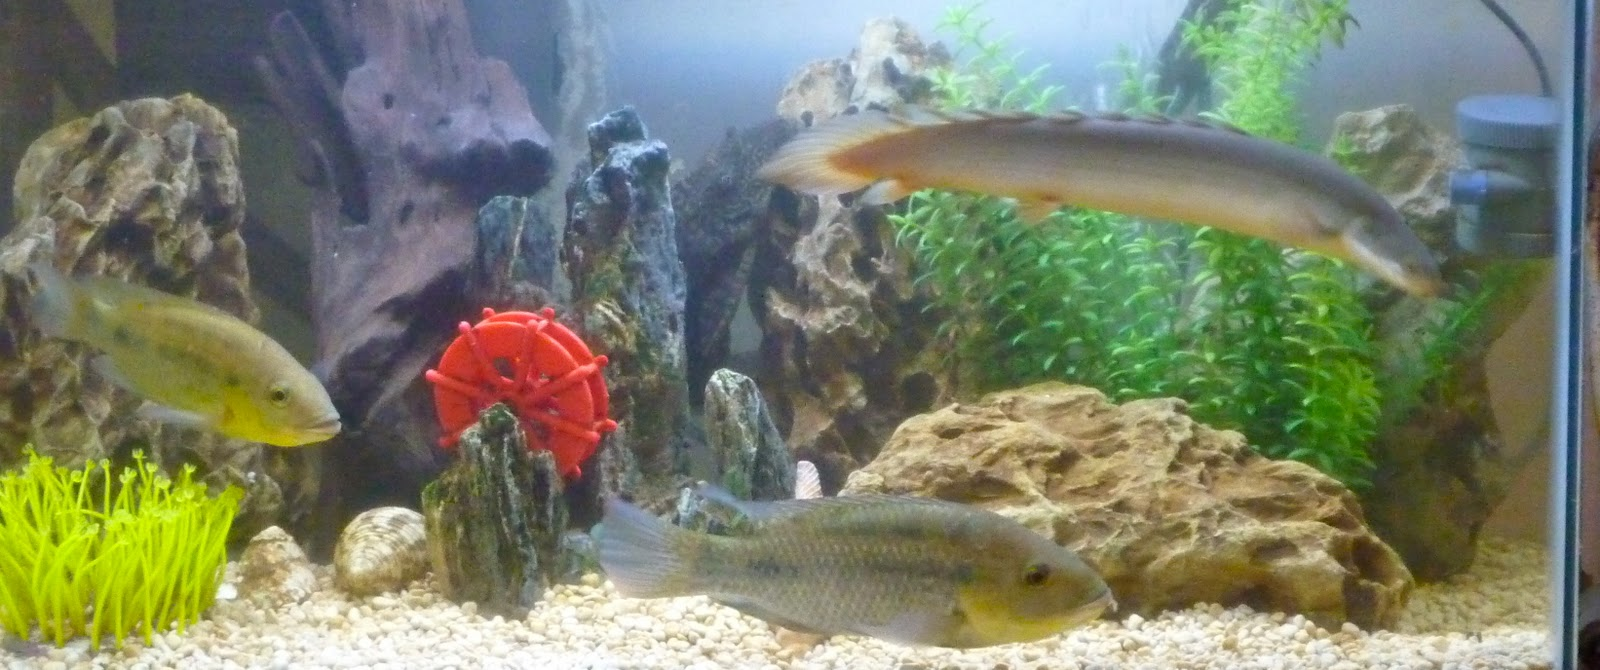 Fish aquarium in johor bahru - In This Tropical Tank You Can See Chiclids Lizard Fish Behind The Rocks Are Catfish Ghost Fish Etc